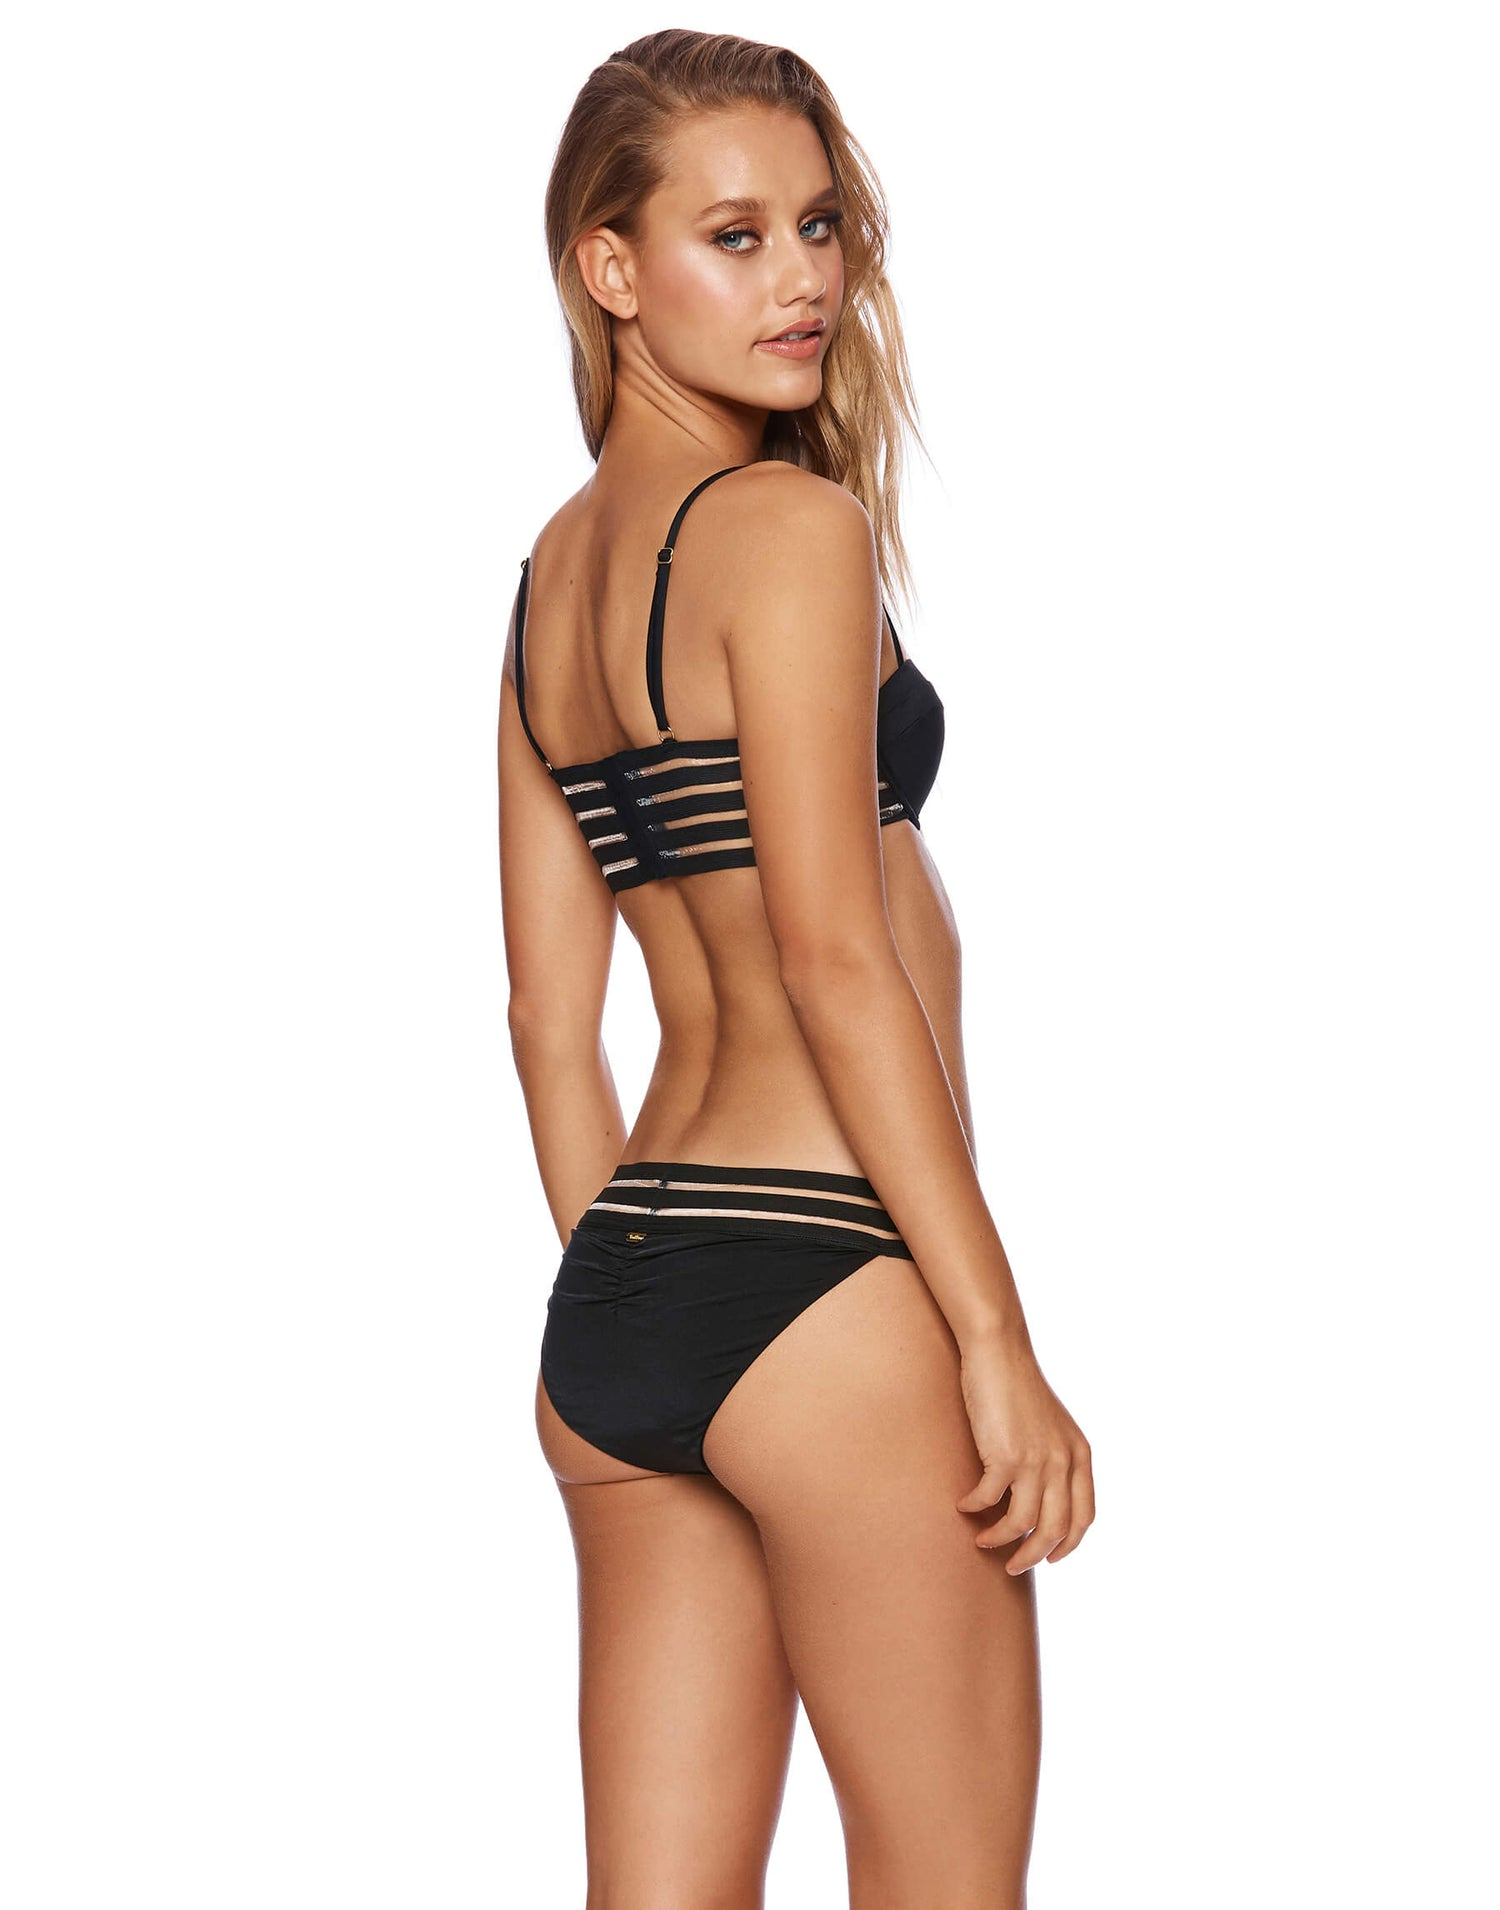 Sheer Addiction Full Bikini Bottom in Black with Sheer Elastic Stripe Band - back view